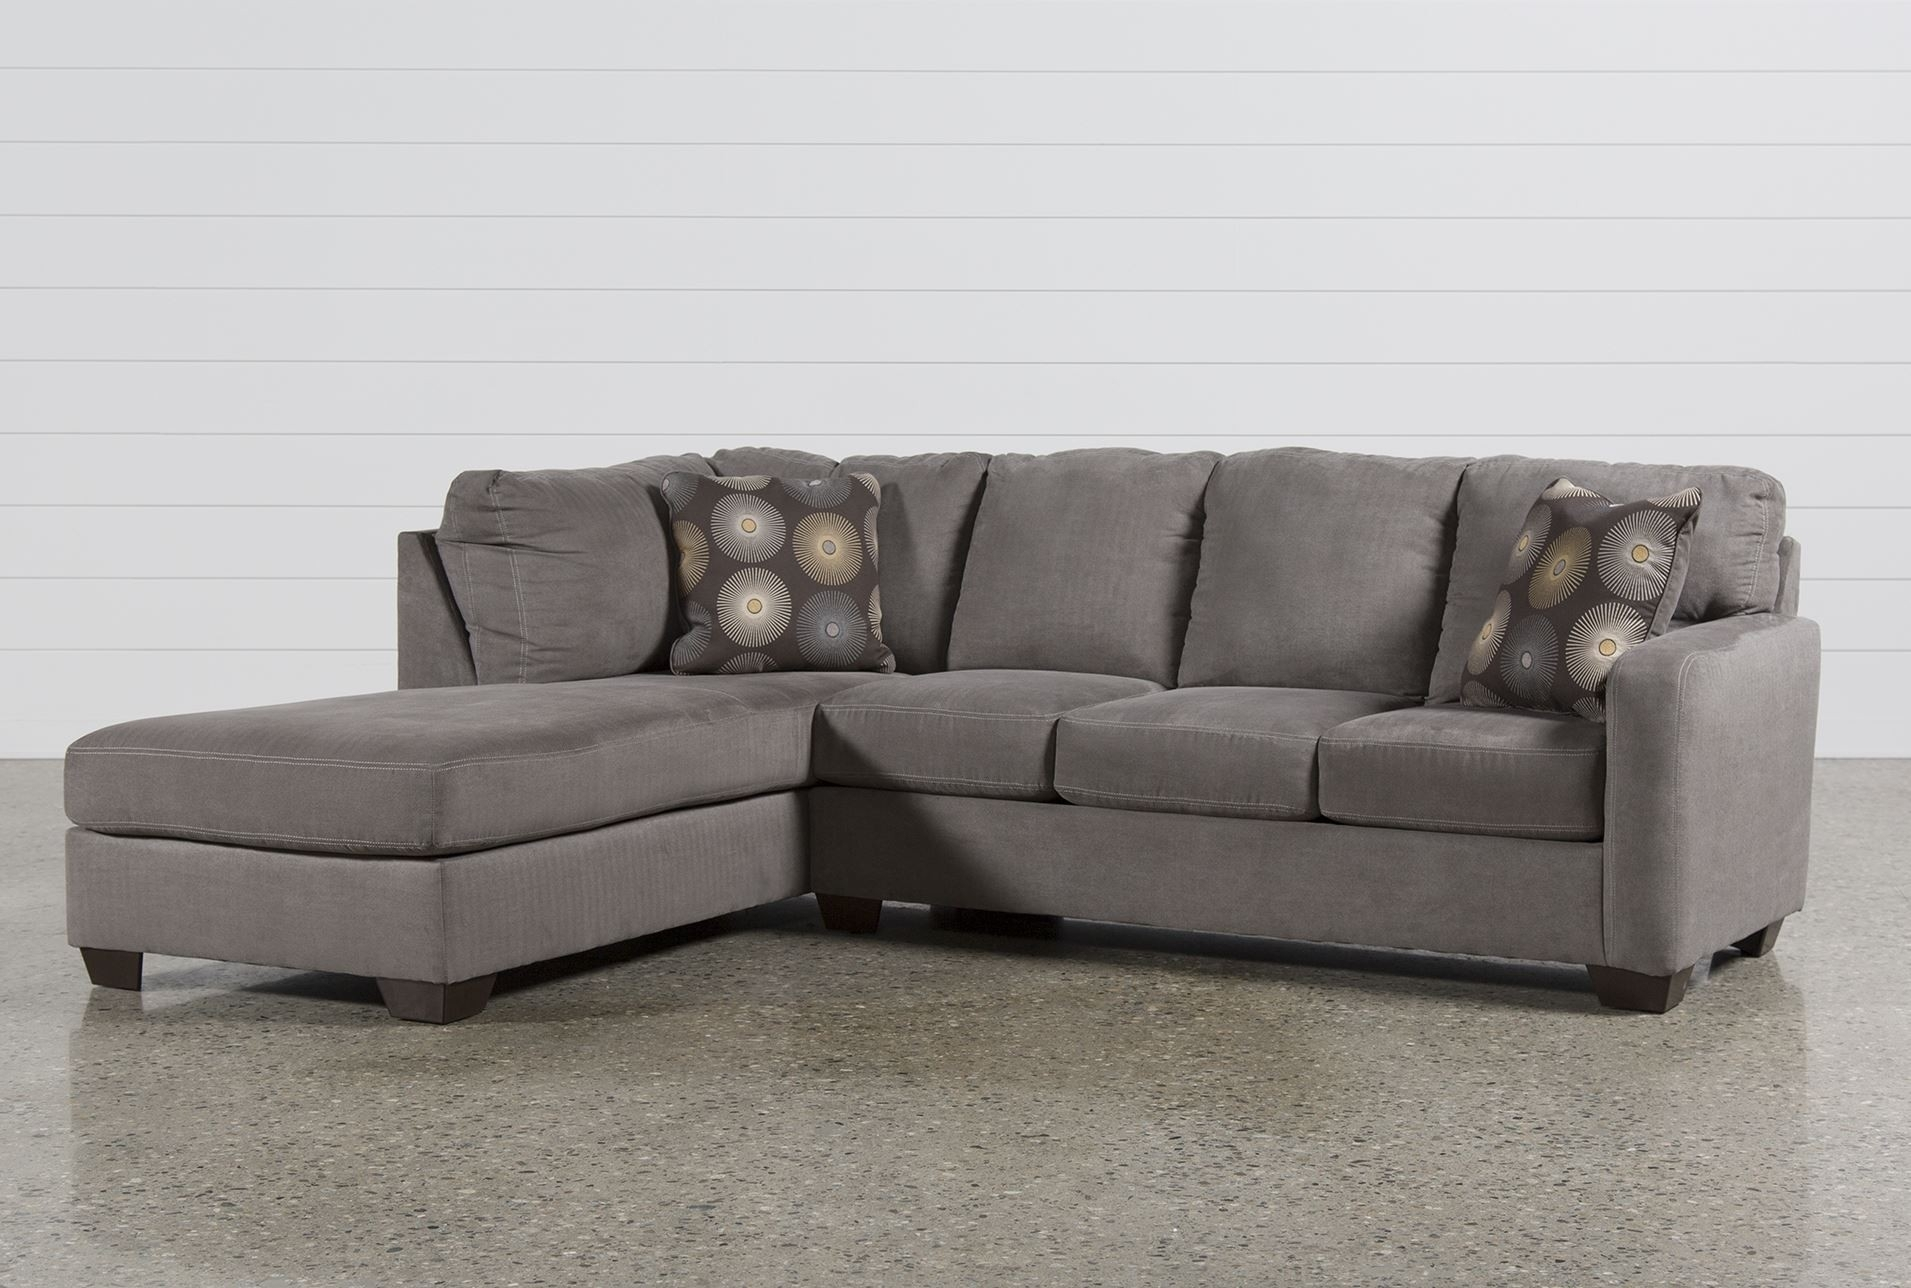 Living Spaces Leather Sectional - Implantologiabogota.co throughout Tatum Dark Grey 2 Piece Sectionals With Laf Chaise (Image 17 of 30)